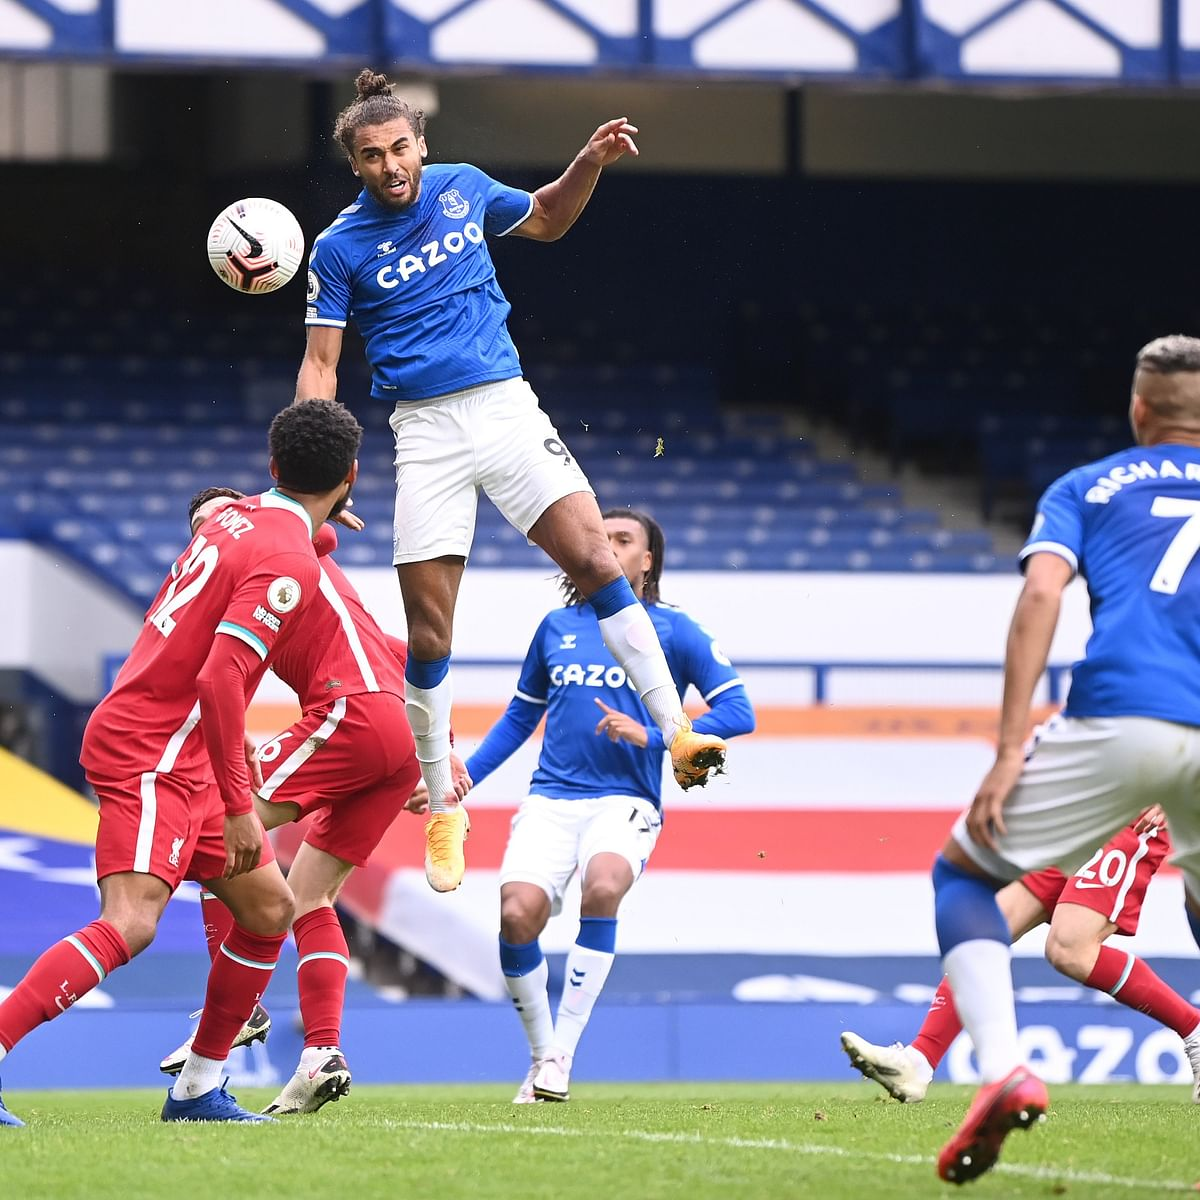 Premier League: Calvert-Lewin earns Everton 2-2 draw with Liverpool